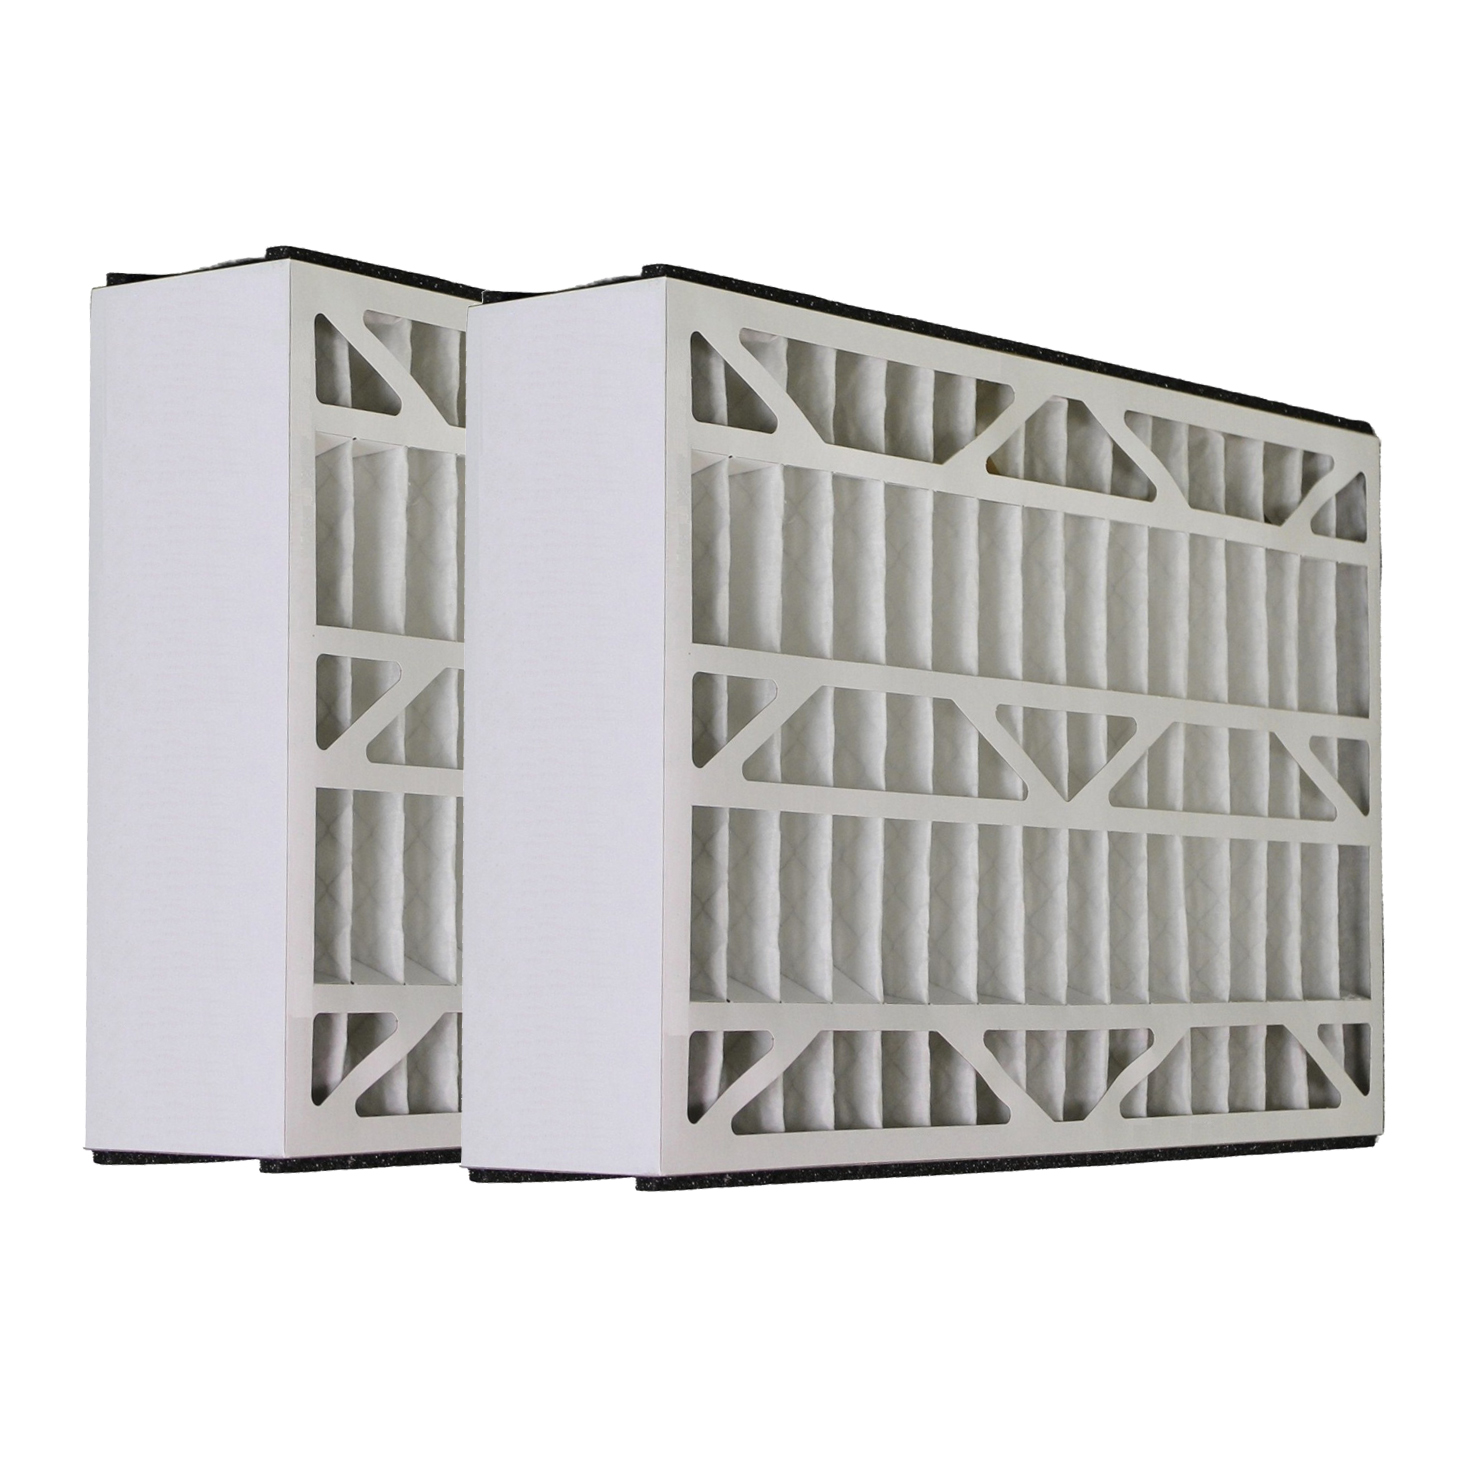 Tier1 Replacement for Skuttle 16x25x5 Merv 8 AC Furnace Air Filter 2 Pack